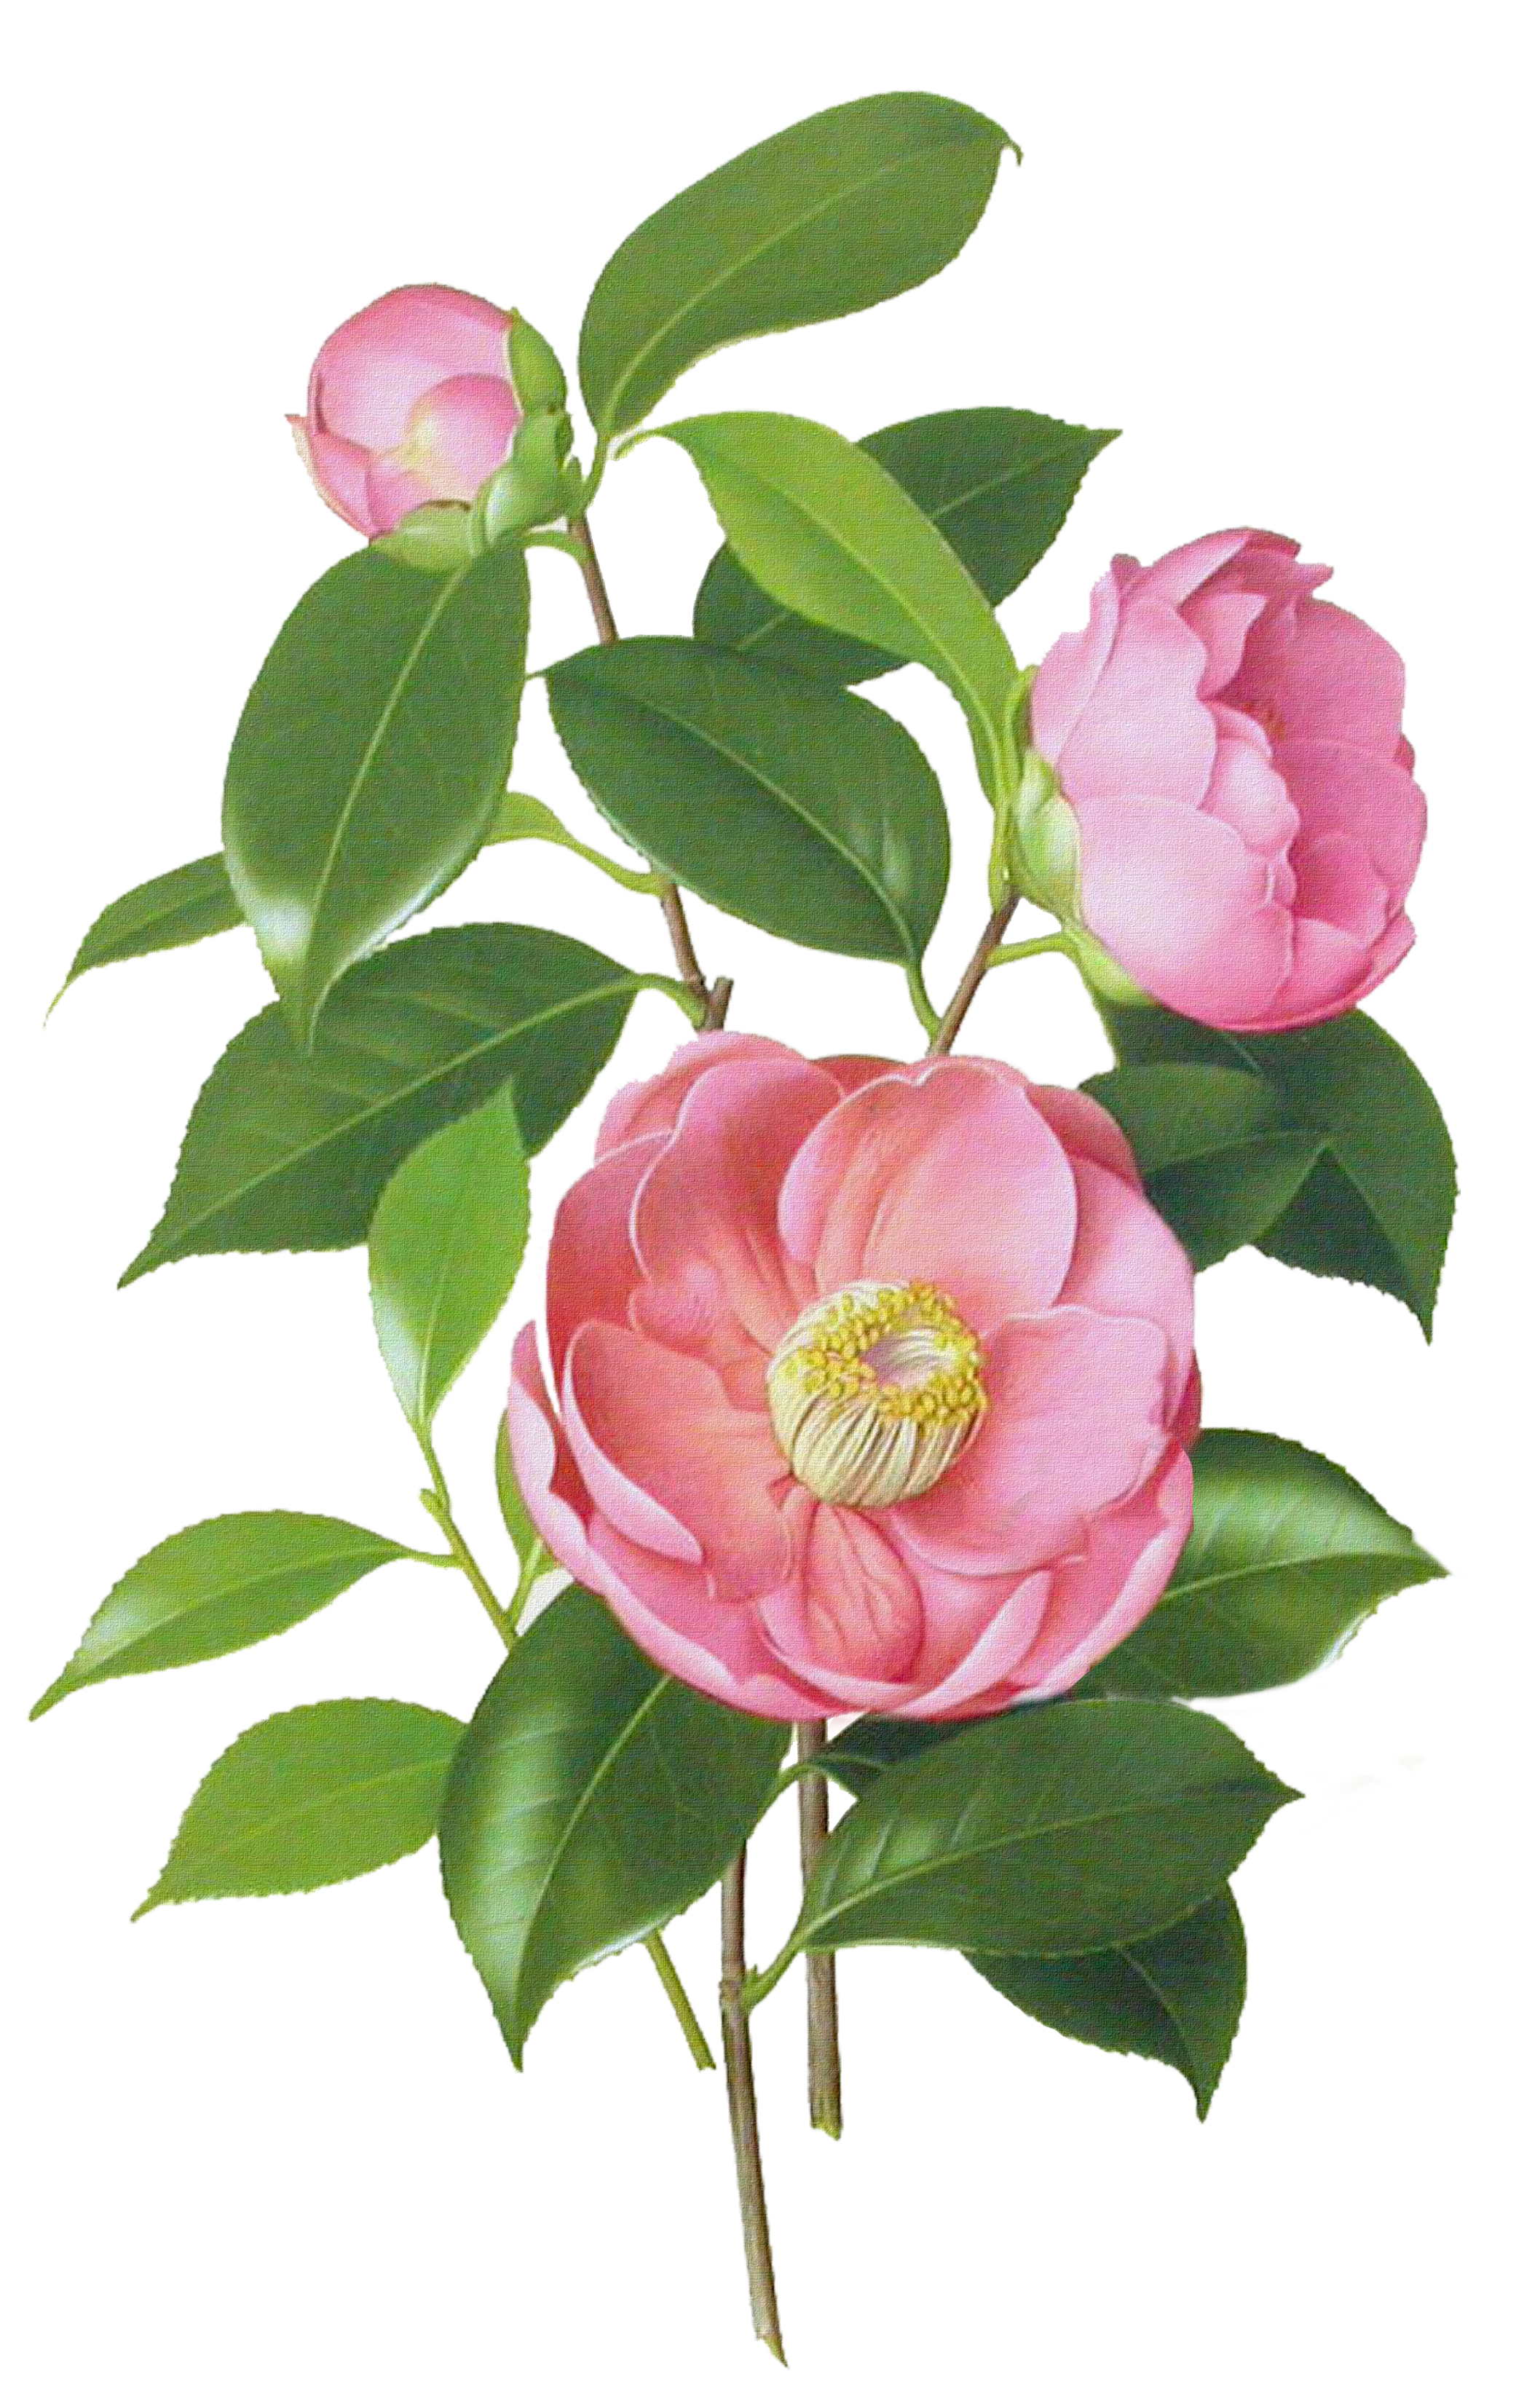 jpg freeuse download Camellia drawing. Japanese watercolor painting botanical